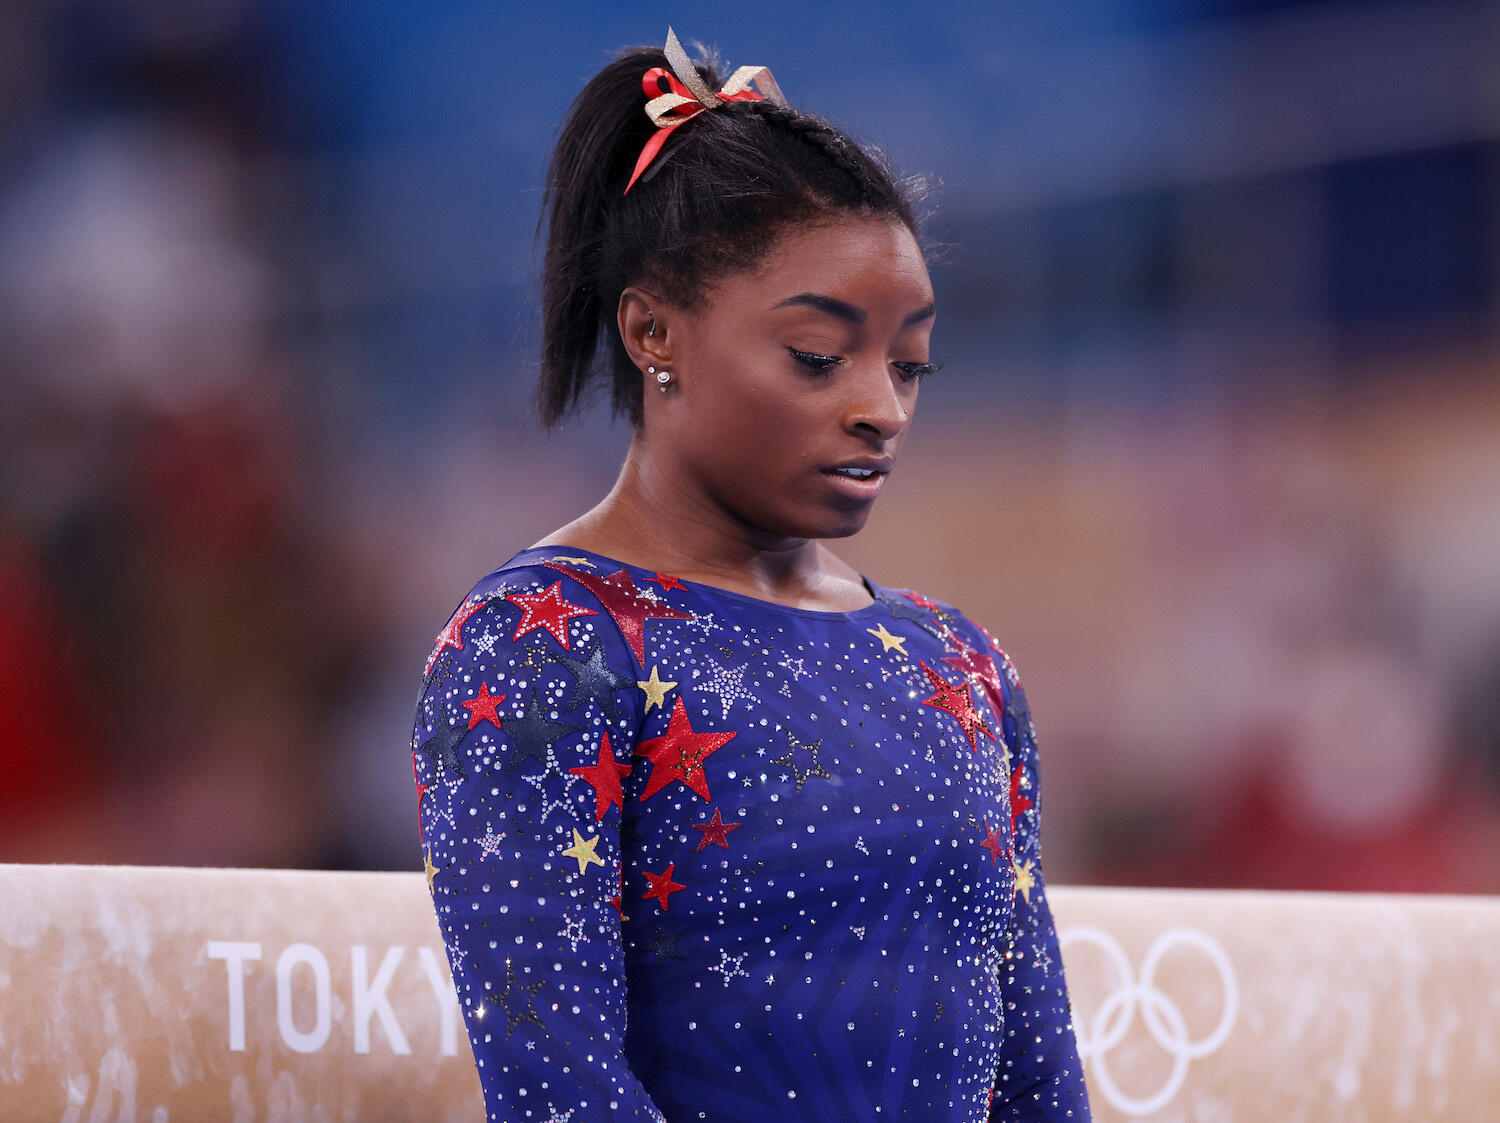 237: 07/27/21 -  Simone Biles Withdraws From The Women's Team Final Due to Mental Health Issues